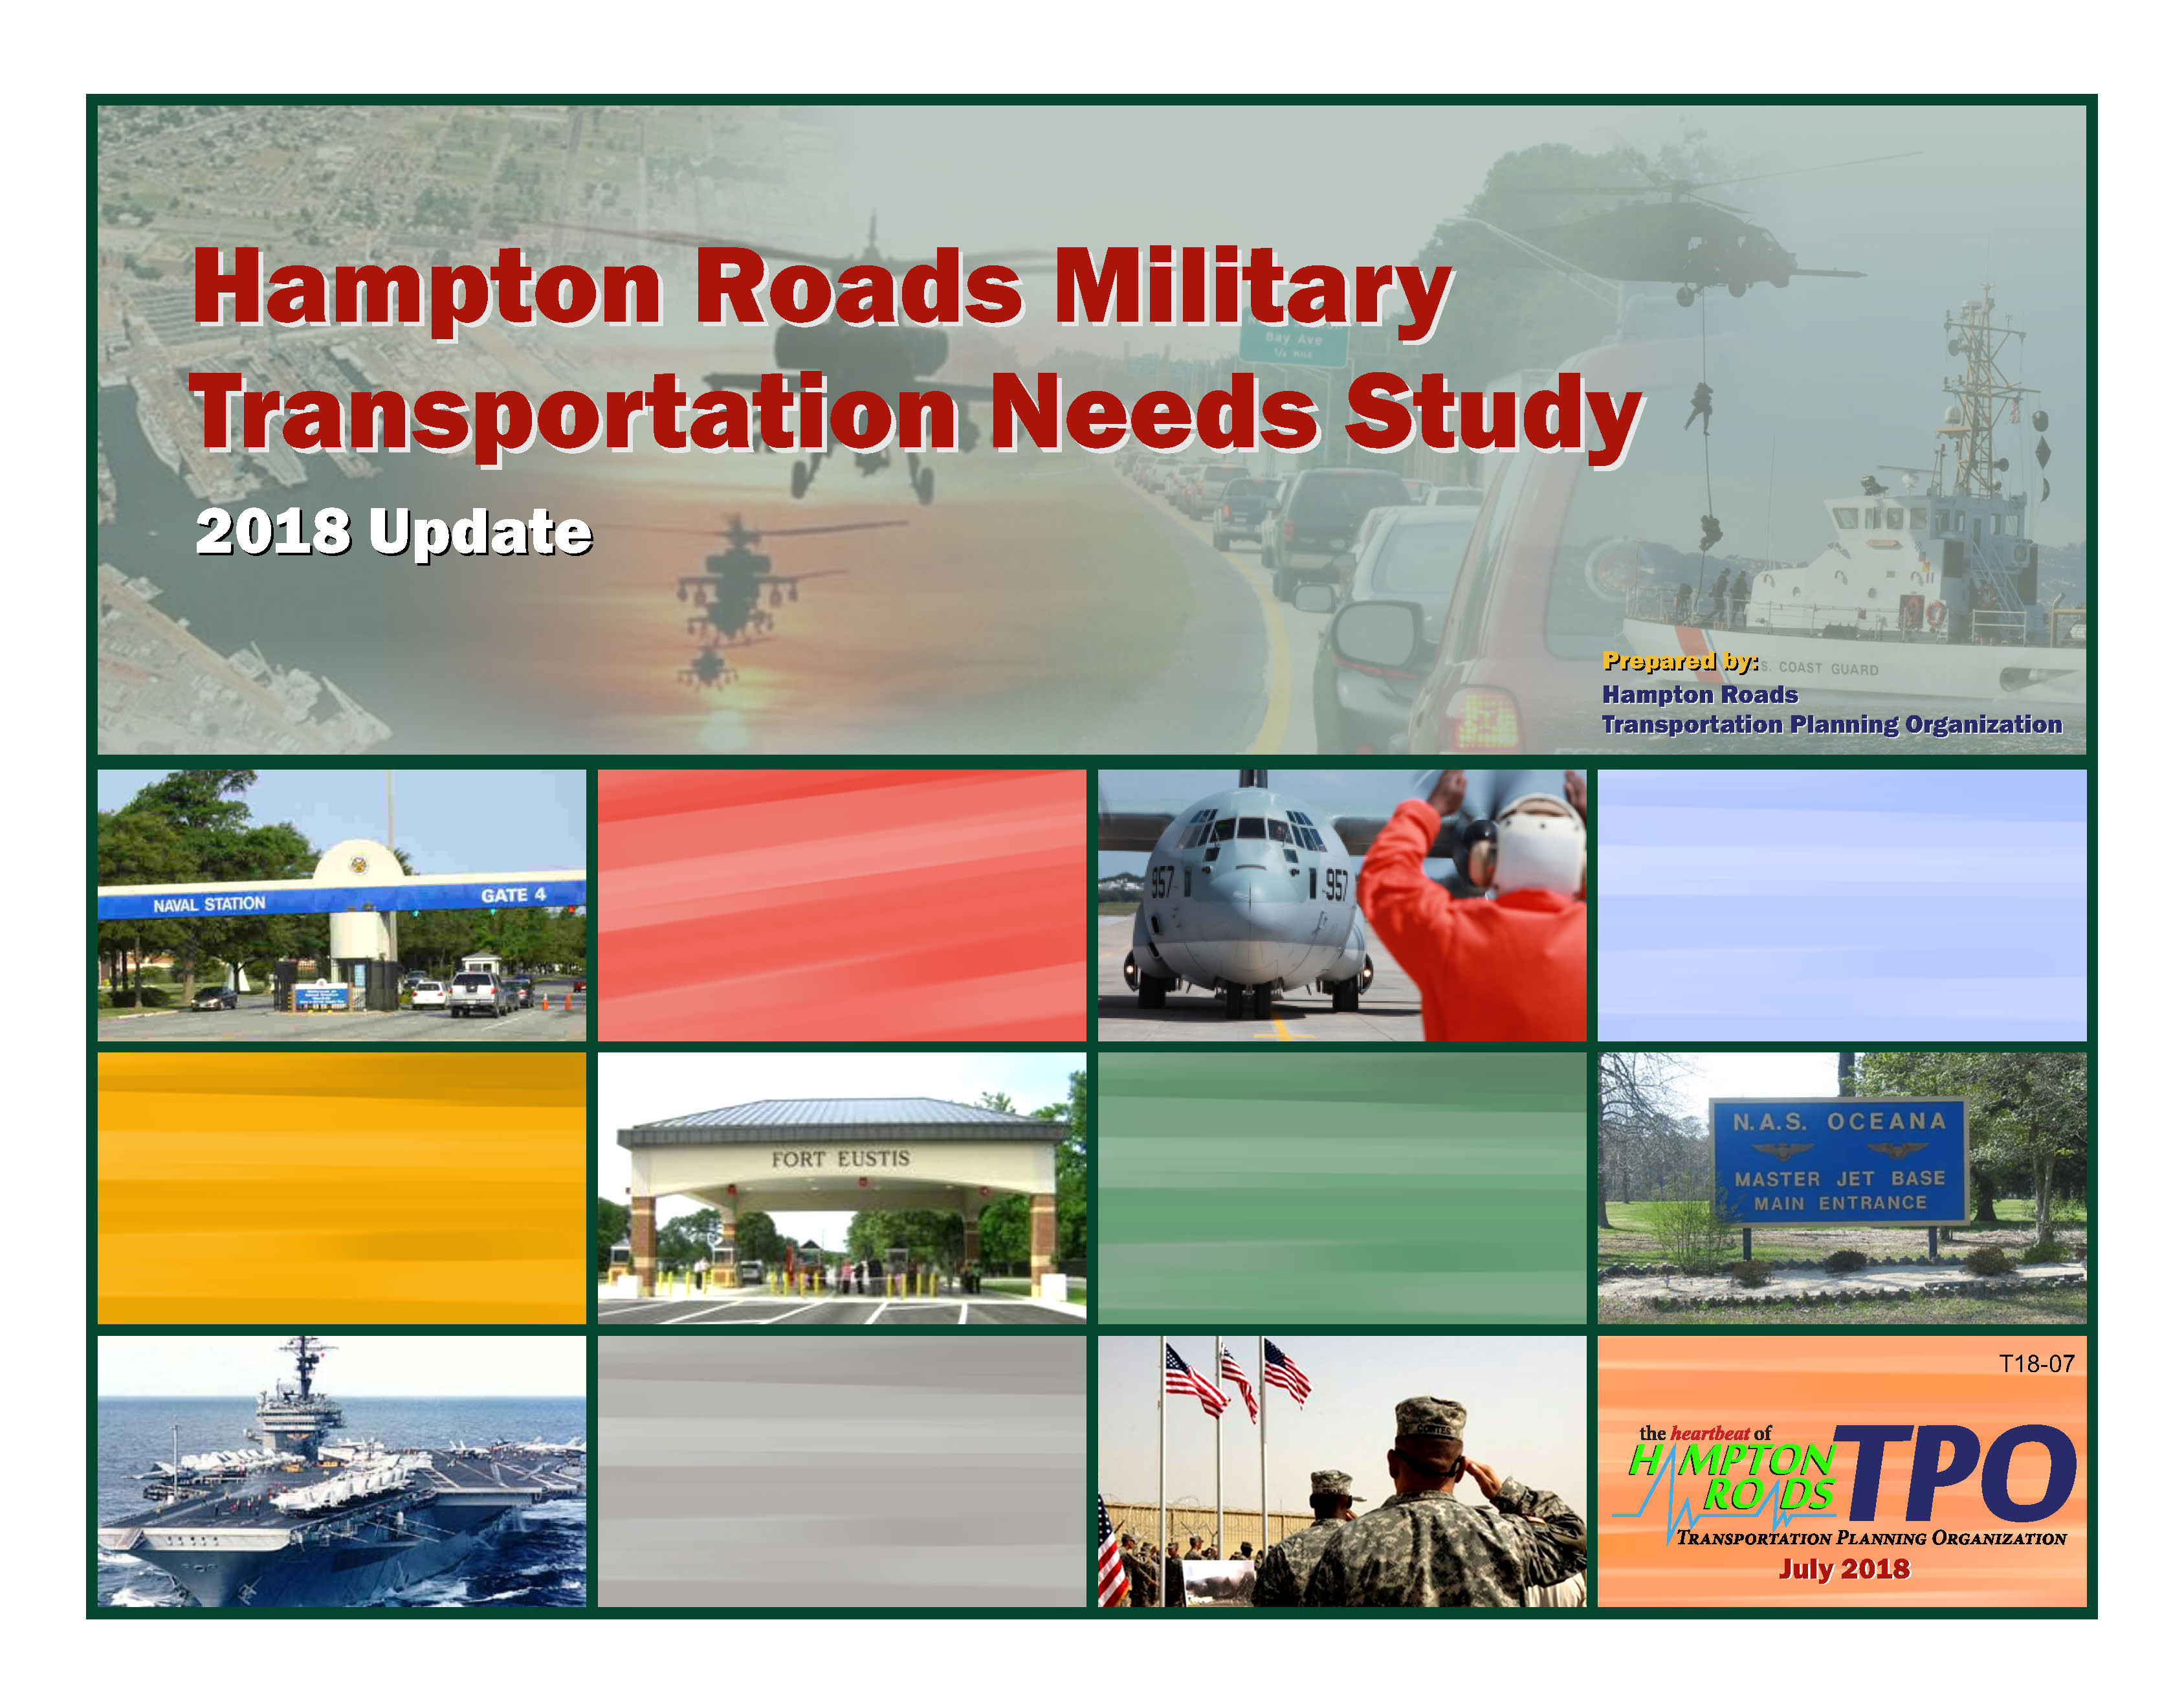 Cover for the Hampton Road Military Transportation Needs Study